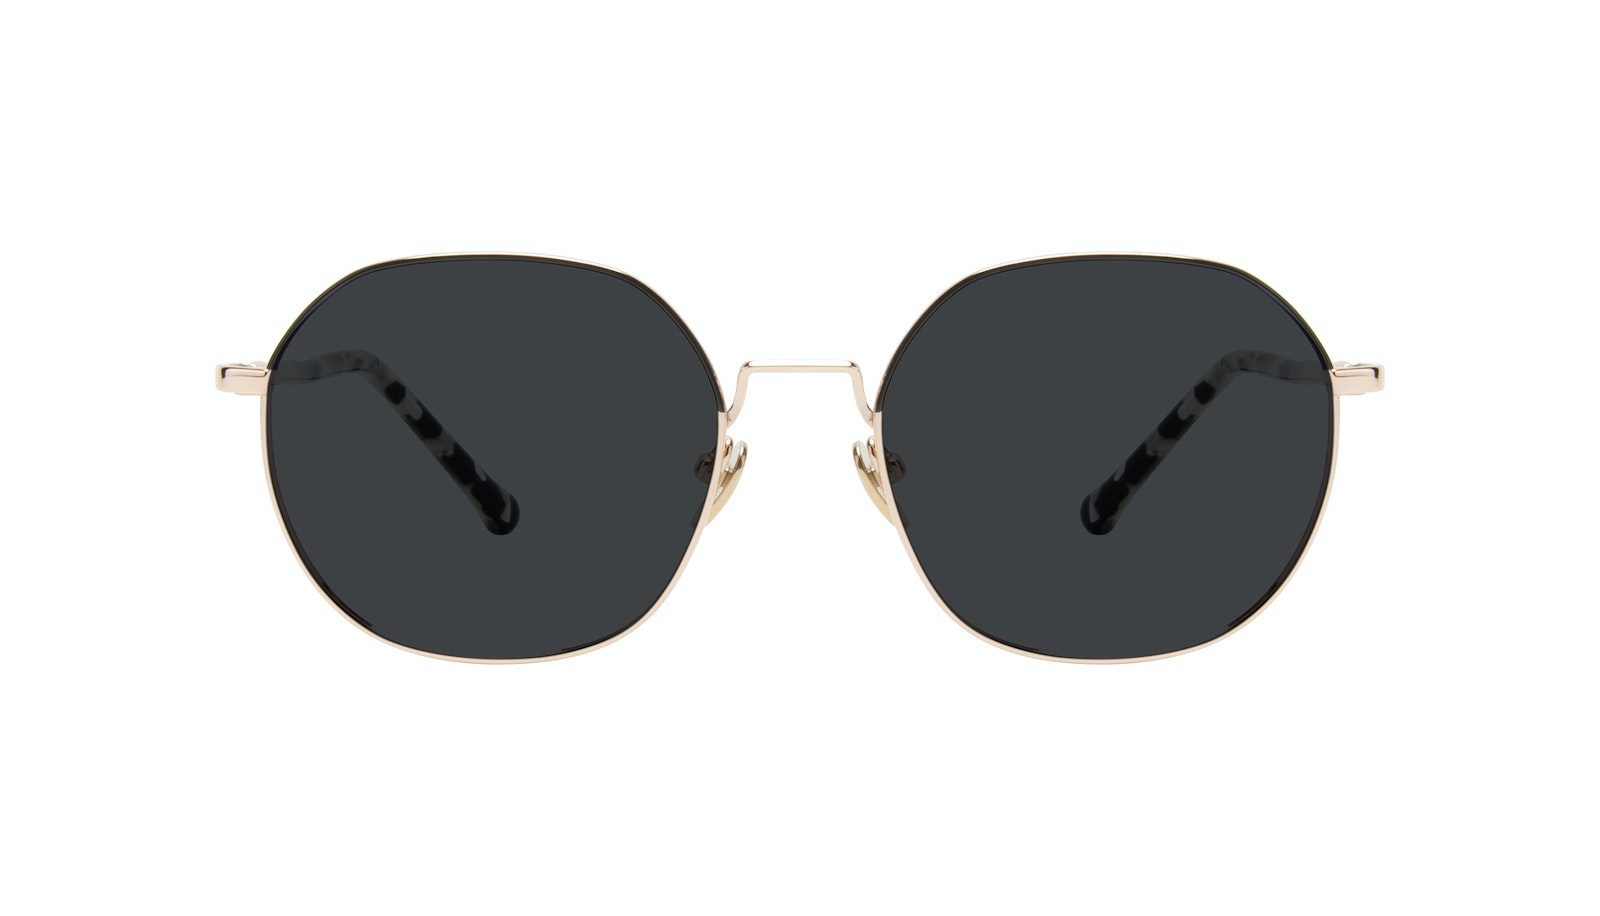 Affordable Fashion Glasses Round Sunglasses Women Coco Deep Goldd